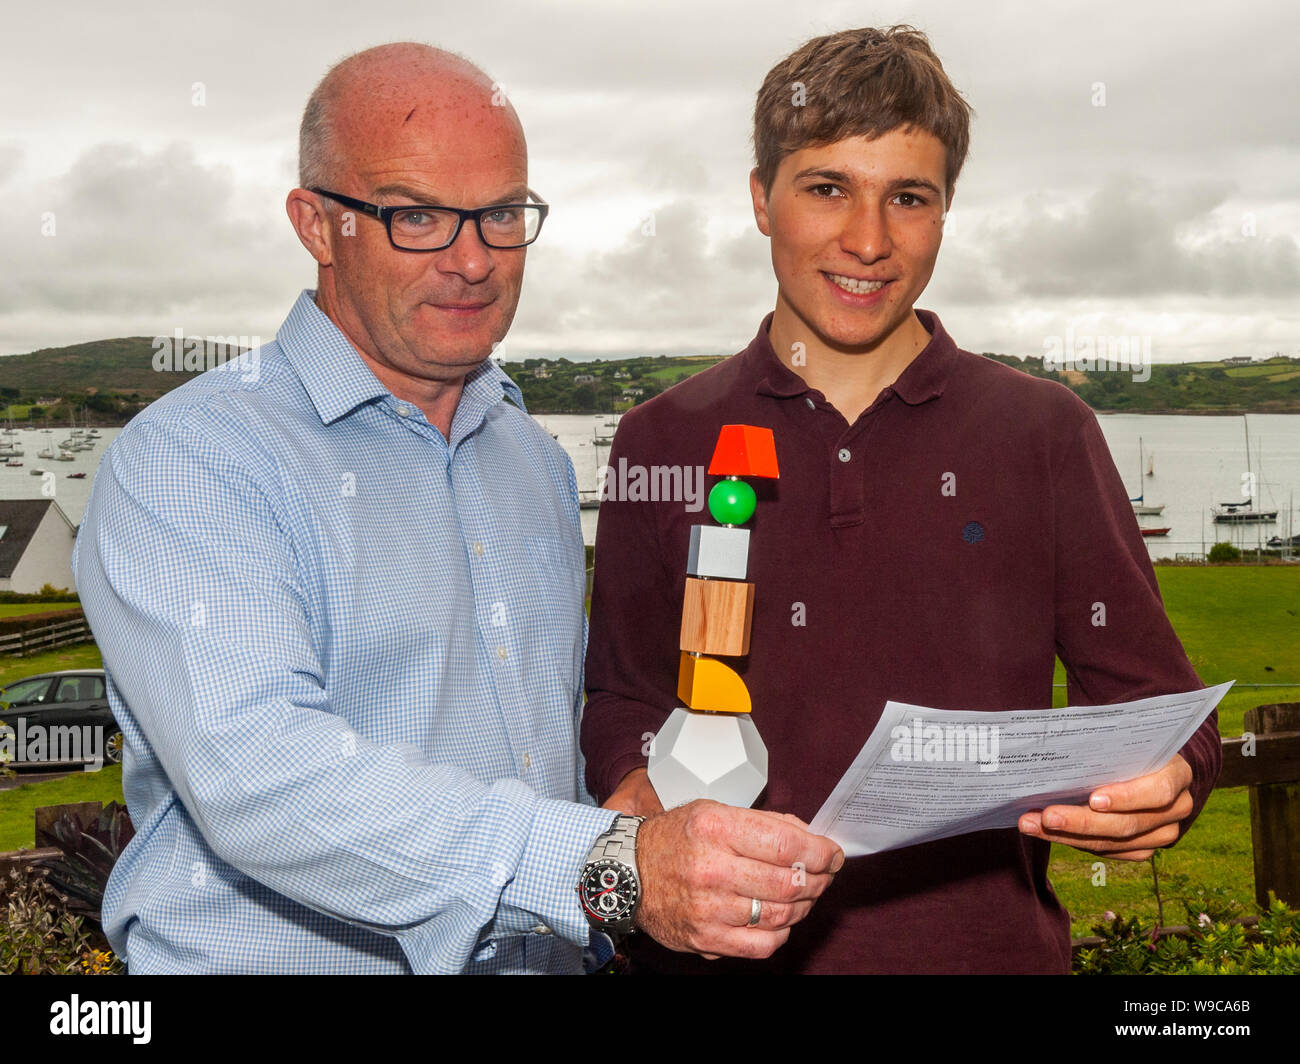 schull-west-cork-ireland-13th-aug-2019-almost-59000-students-were-due-to-receive-their-leaving-cert-results-today-a-day-earlier-than-previous-years-checking-his-results-was-google-science-fair-winner-fionn-ferreira-with-school-principal-brendan-drinan-credit-andy-gibsonalamy-live-news-W9CA6B.jpg